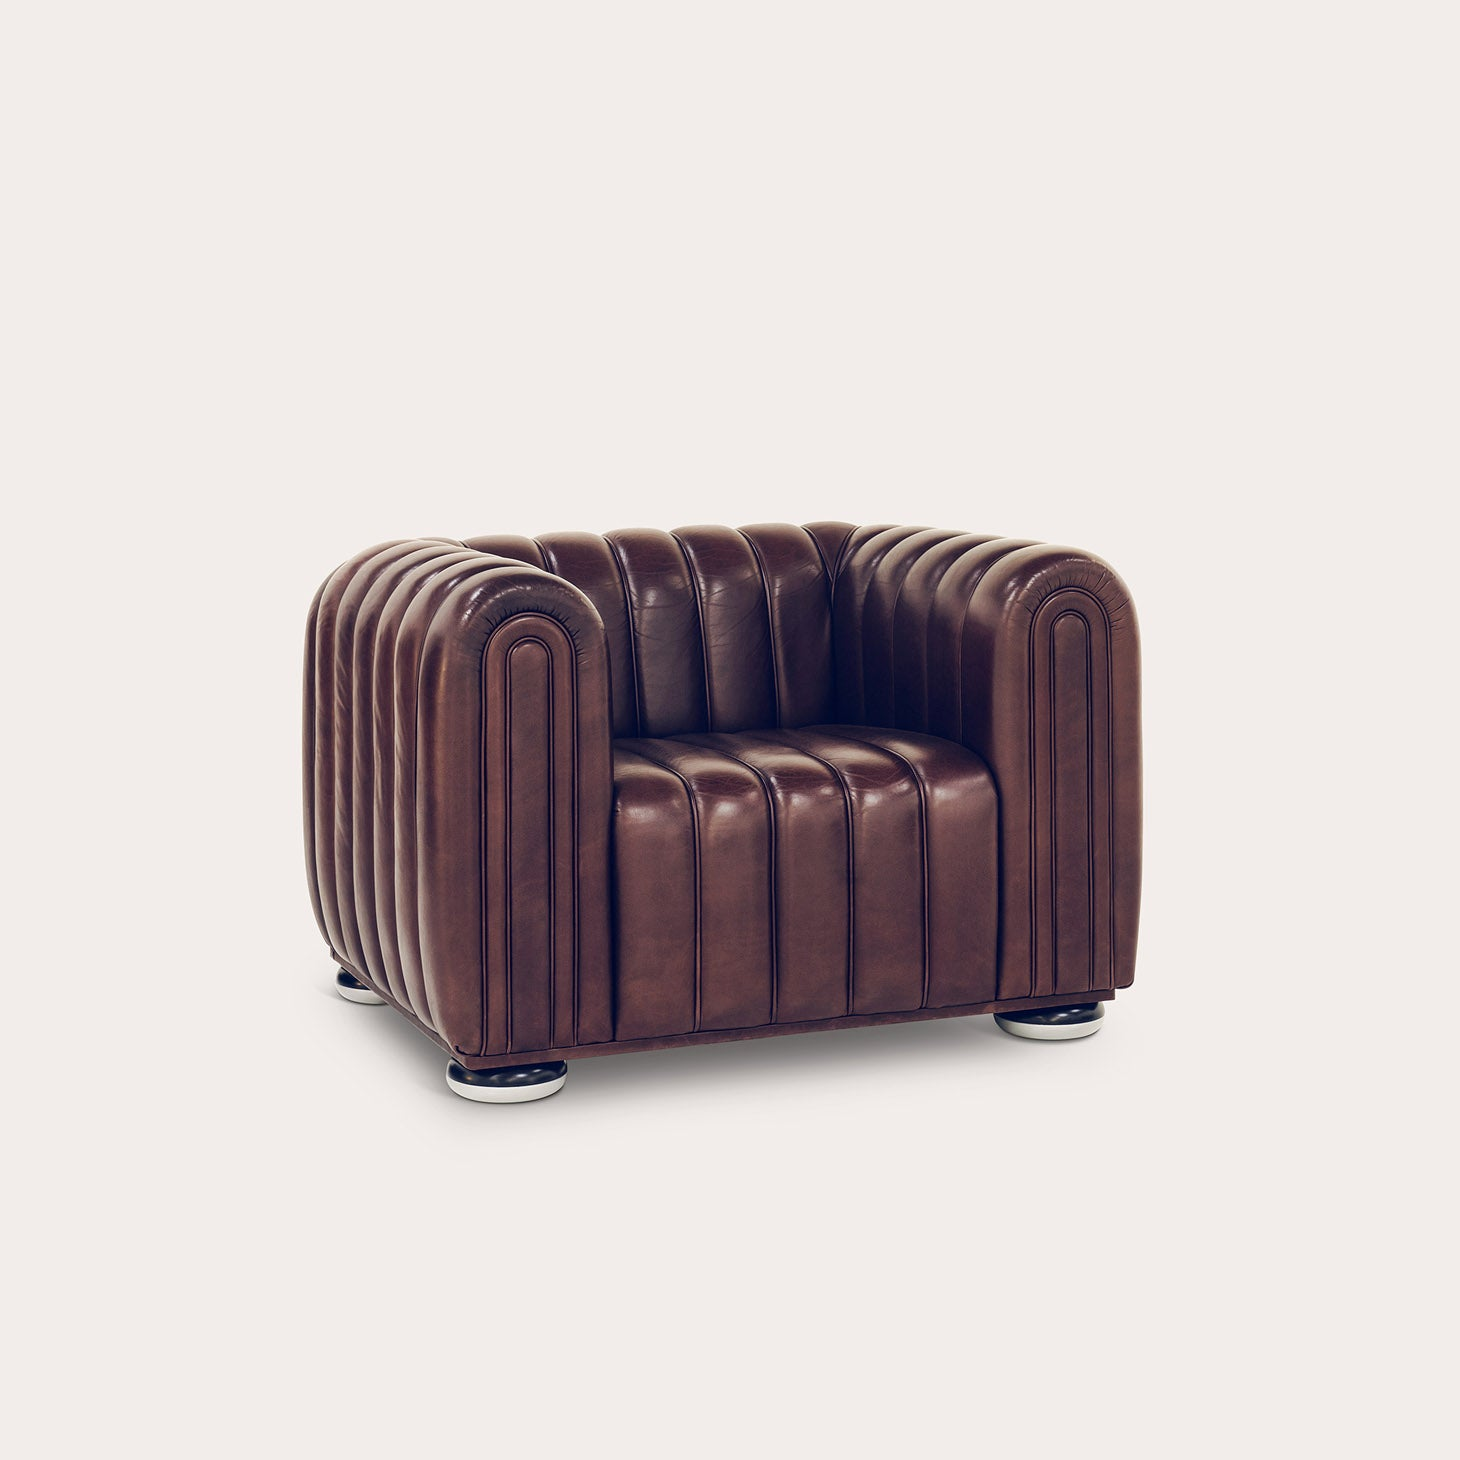 Club 1910 Seating Josef Hoffmann Designer Furniture Sku: 758-240-10114